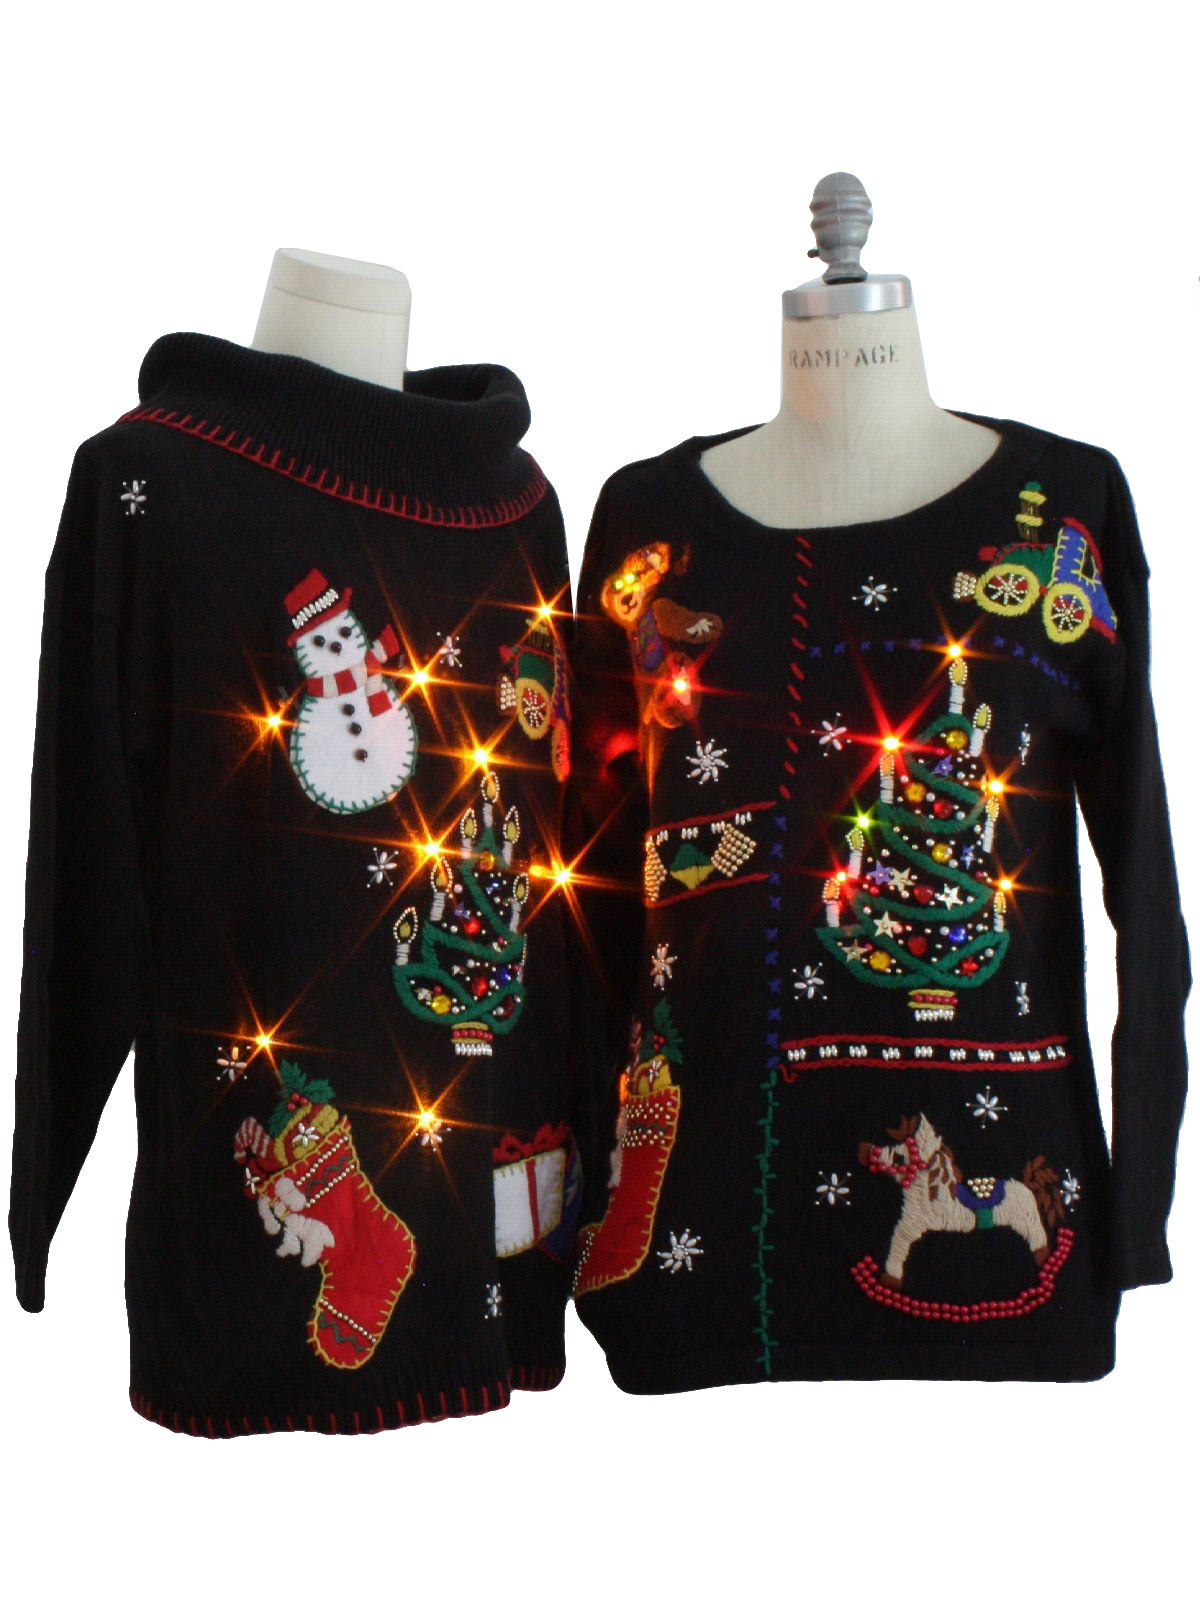 Matching ugly christmas sweater: Target5% Off W/ REDcard · Same Day Store Pick-Up · Free Shipping $35+1,,+ followers on Twitter.